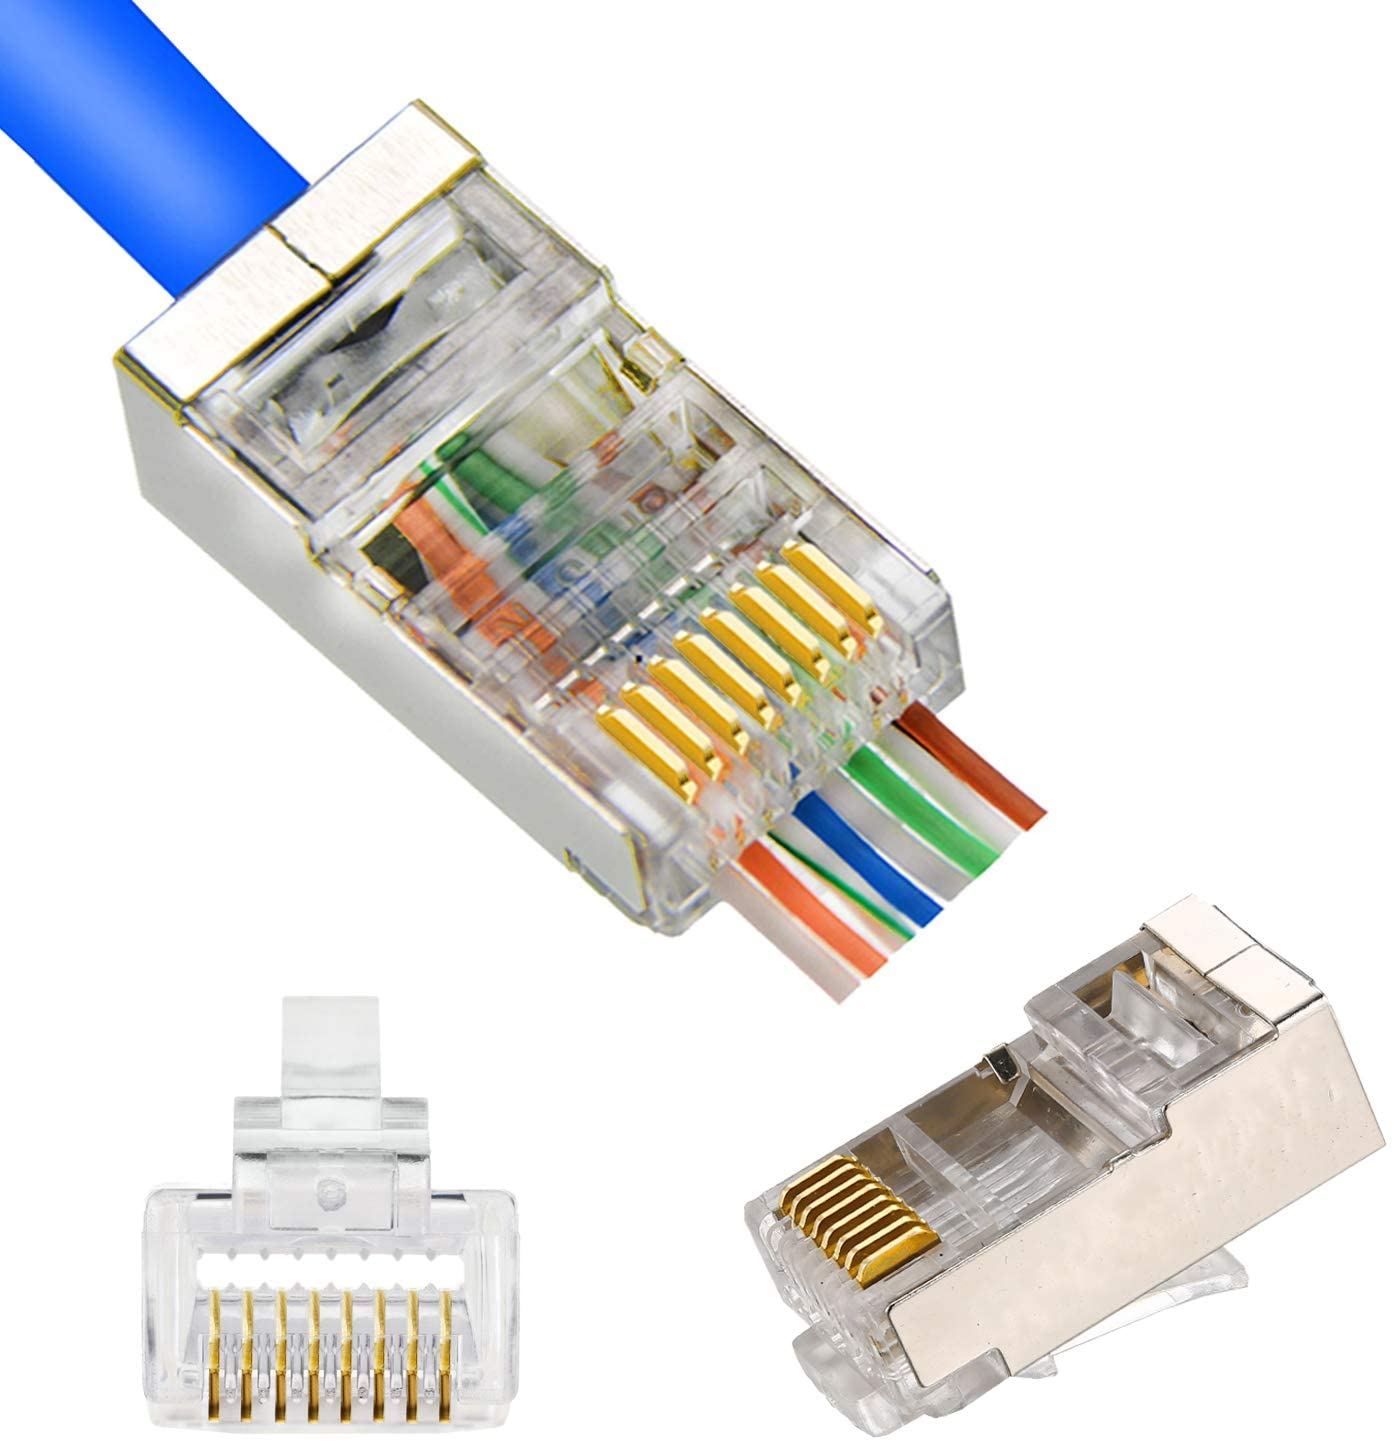 Amazon.com: RJ45 CAT5 CAT6 Shielded Connector End Pass Through Gold Plated  Ethernet 8P8C 3u Modular Plug 20Pack: Computers & AccessoriesAmazon.com